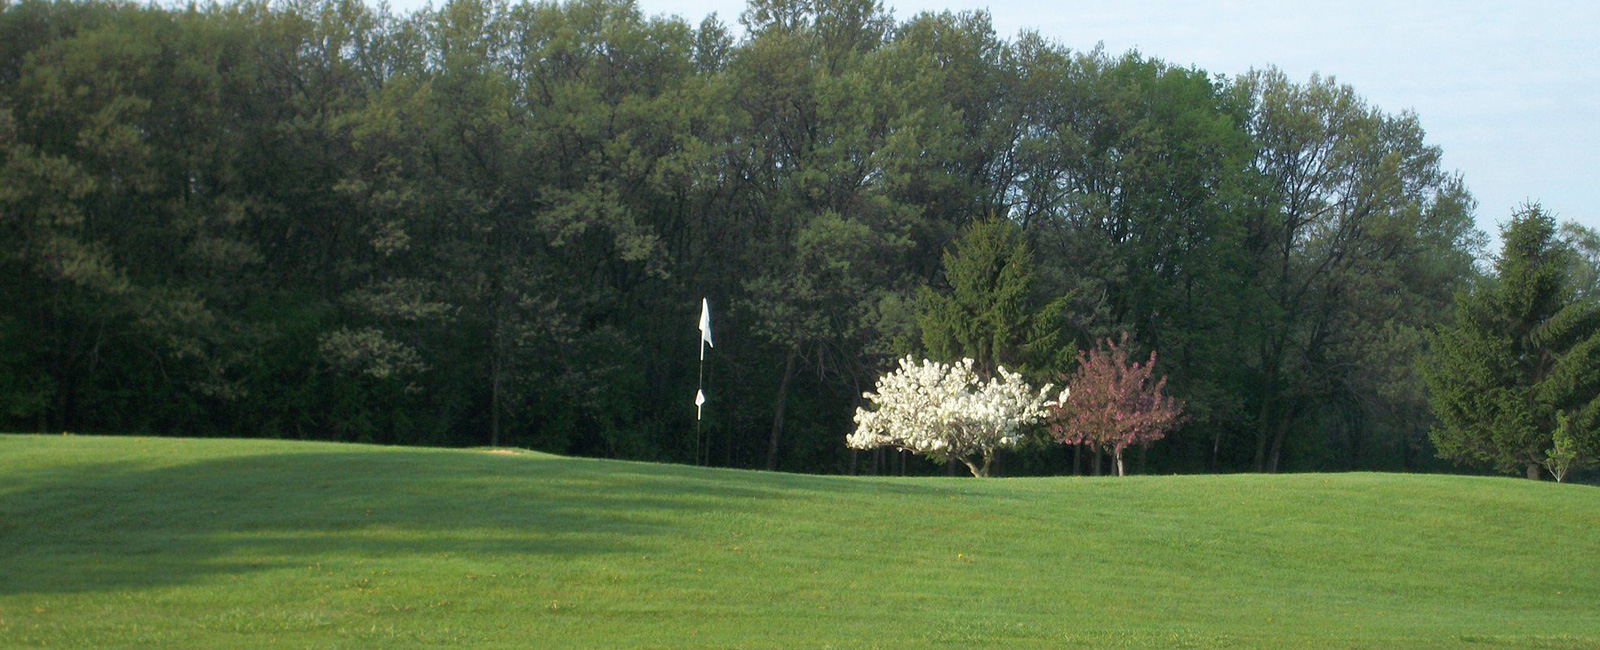 Koshkonong Country Club